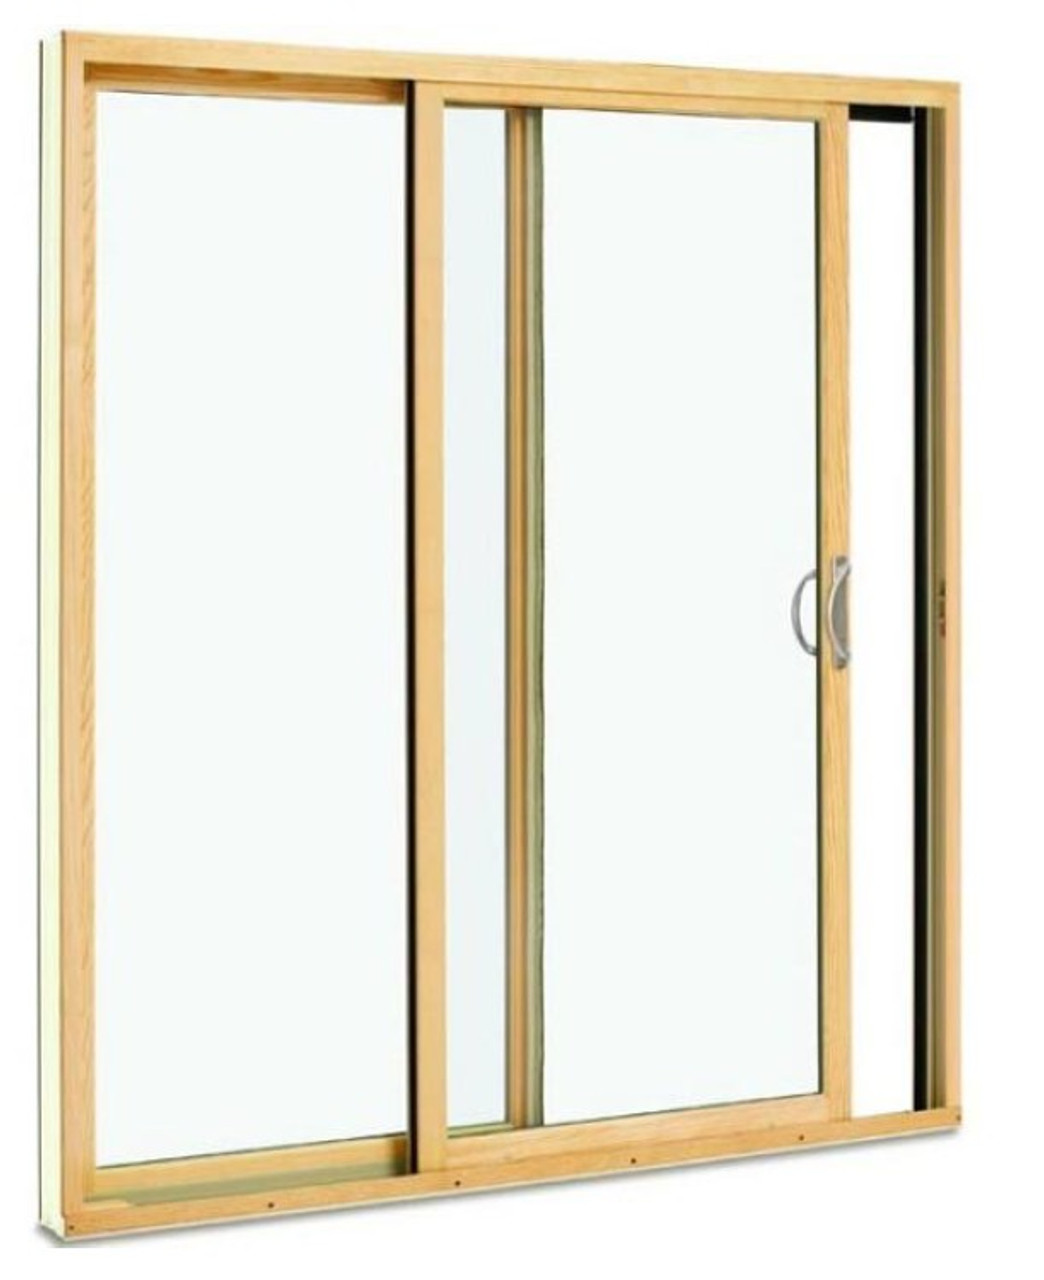 2-PANEL CP5   ROUGH OPENING= 4'11 1/2'' x 6' 9''h  narrow style Sliding door / LOW-E 270 GLASS/white blinds in the glass. color of door bronze clad, screen included, bronze handle